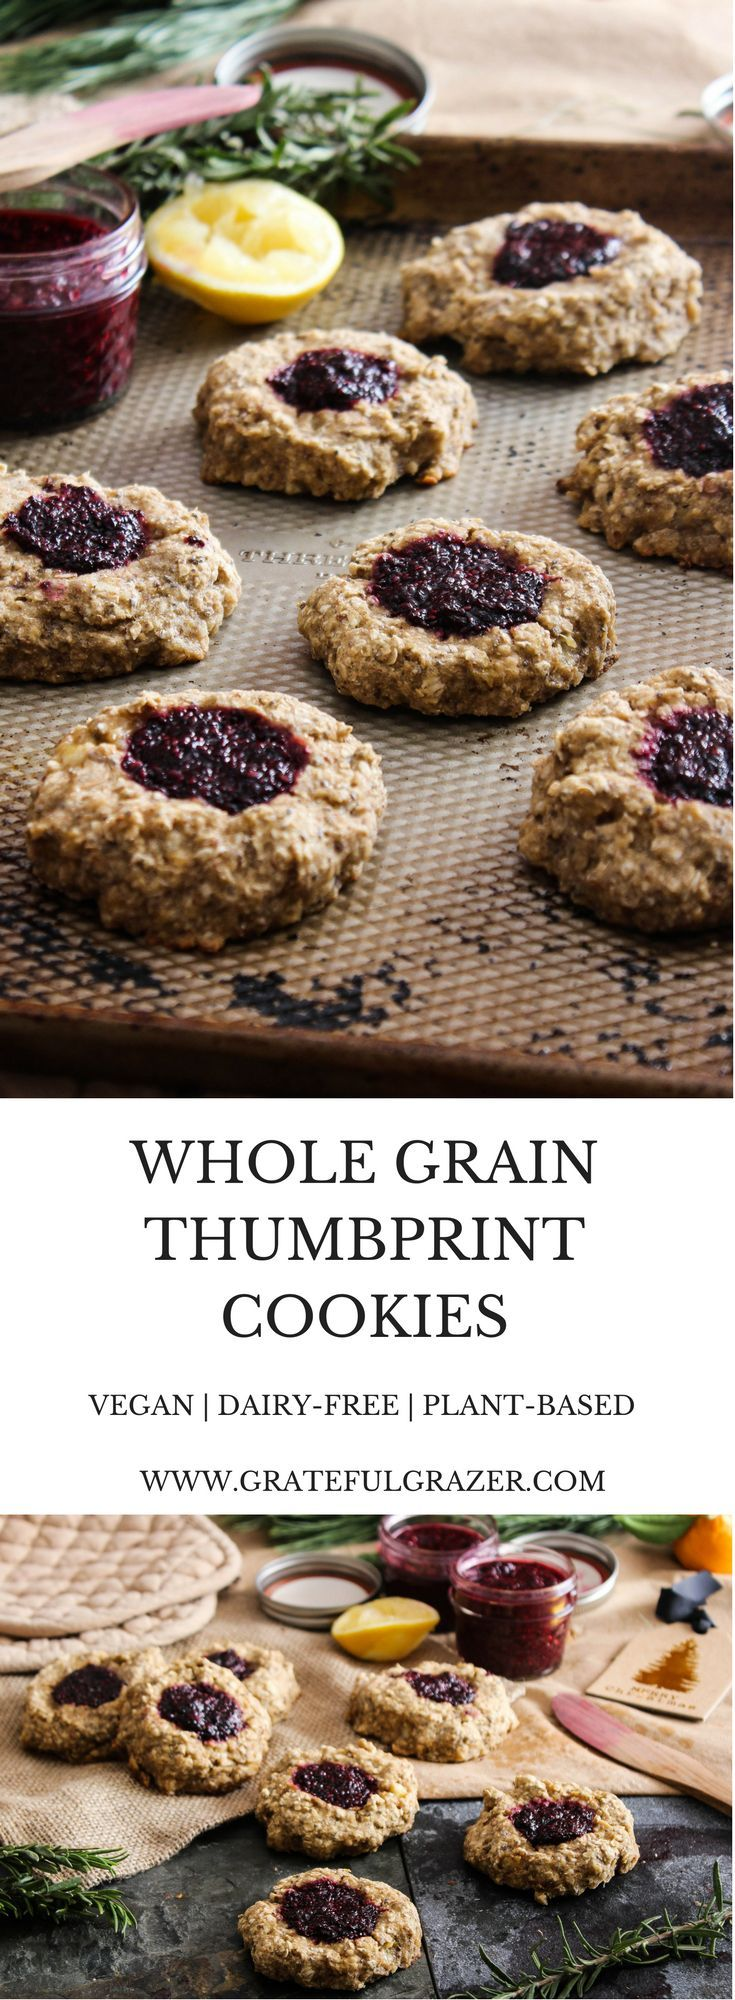 These delicious whole grain thumbprint cookies are healthy enough for breakfast + sweet enough for dessert. Healthy holiday cookie recipe! via @gratefulgrazer